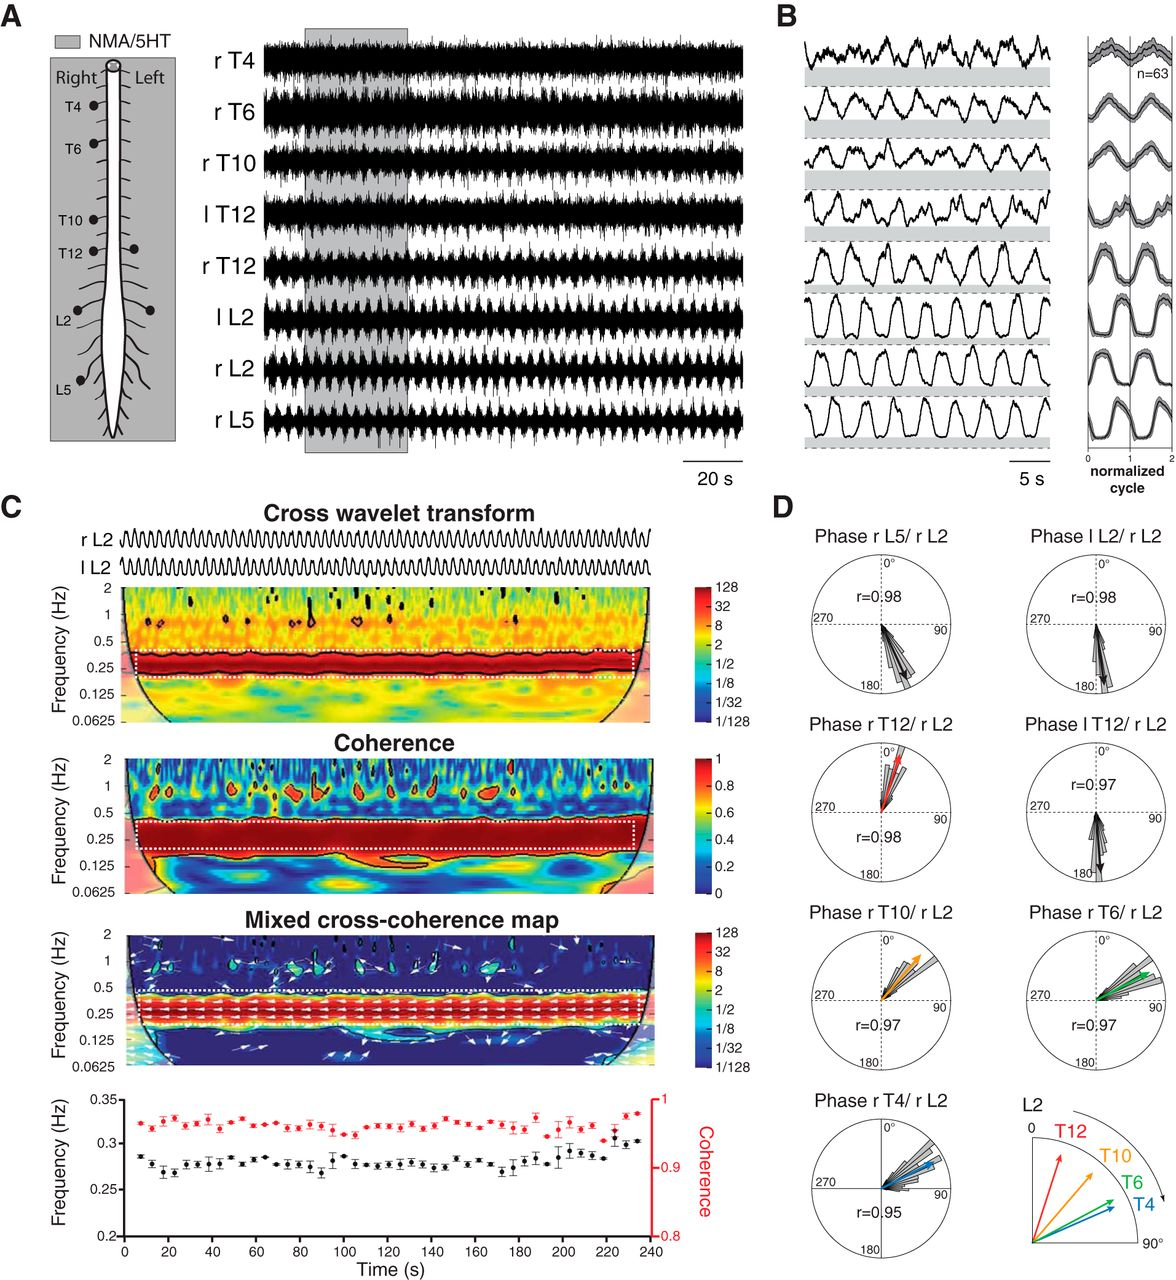 Origin of Thoracic Spinal Network Activity during Locomotor